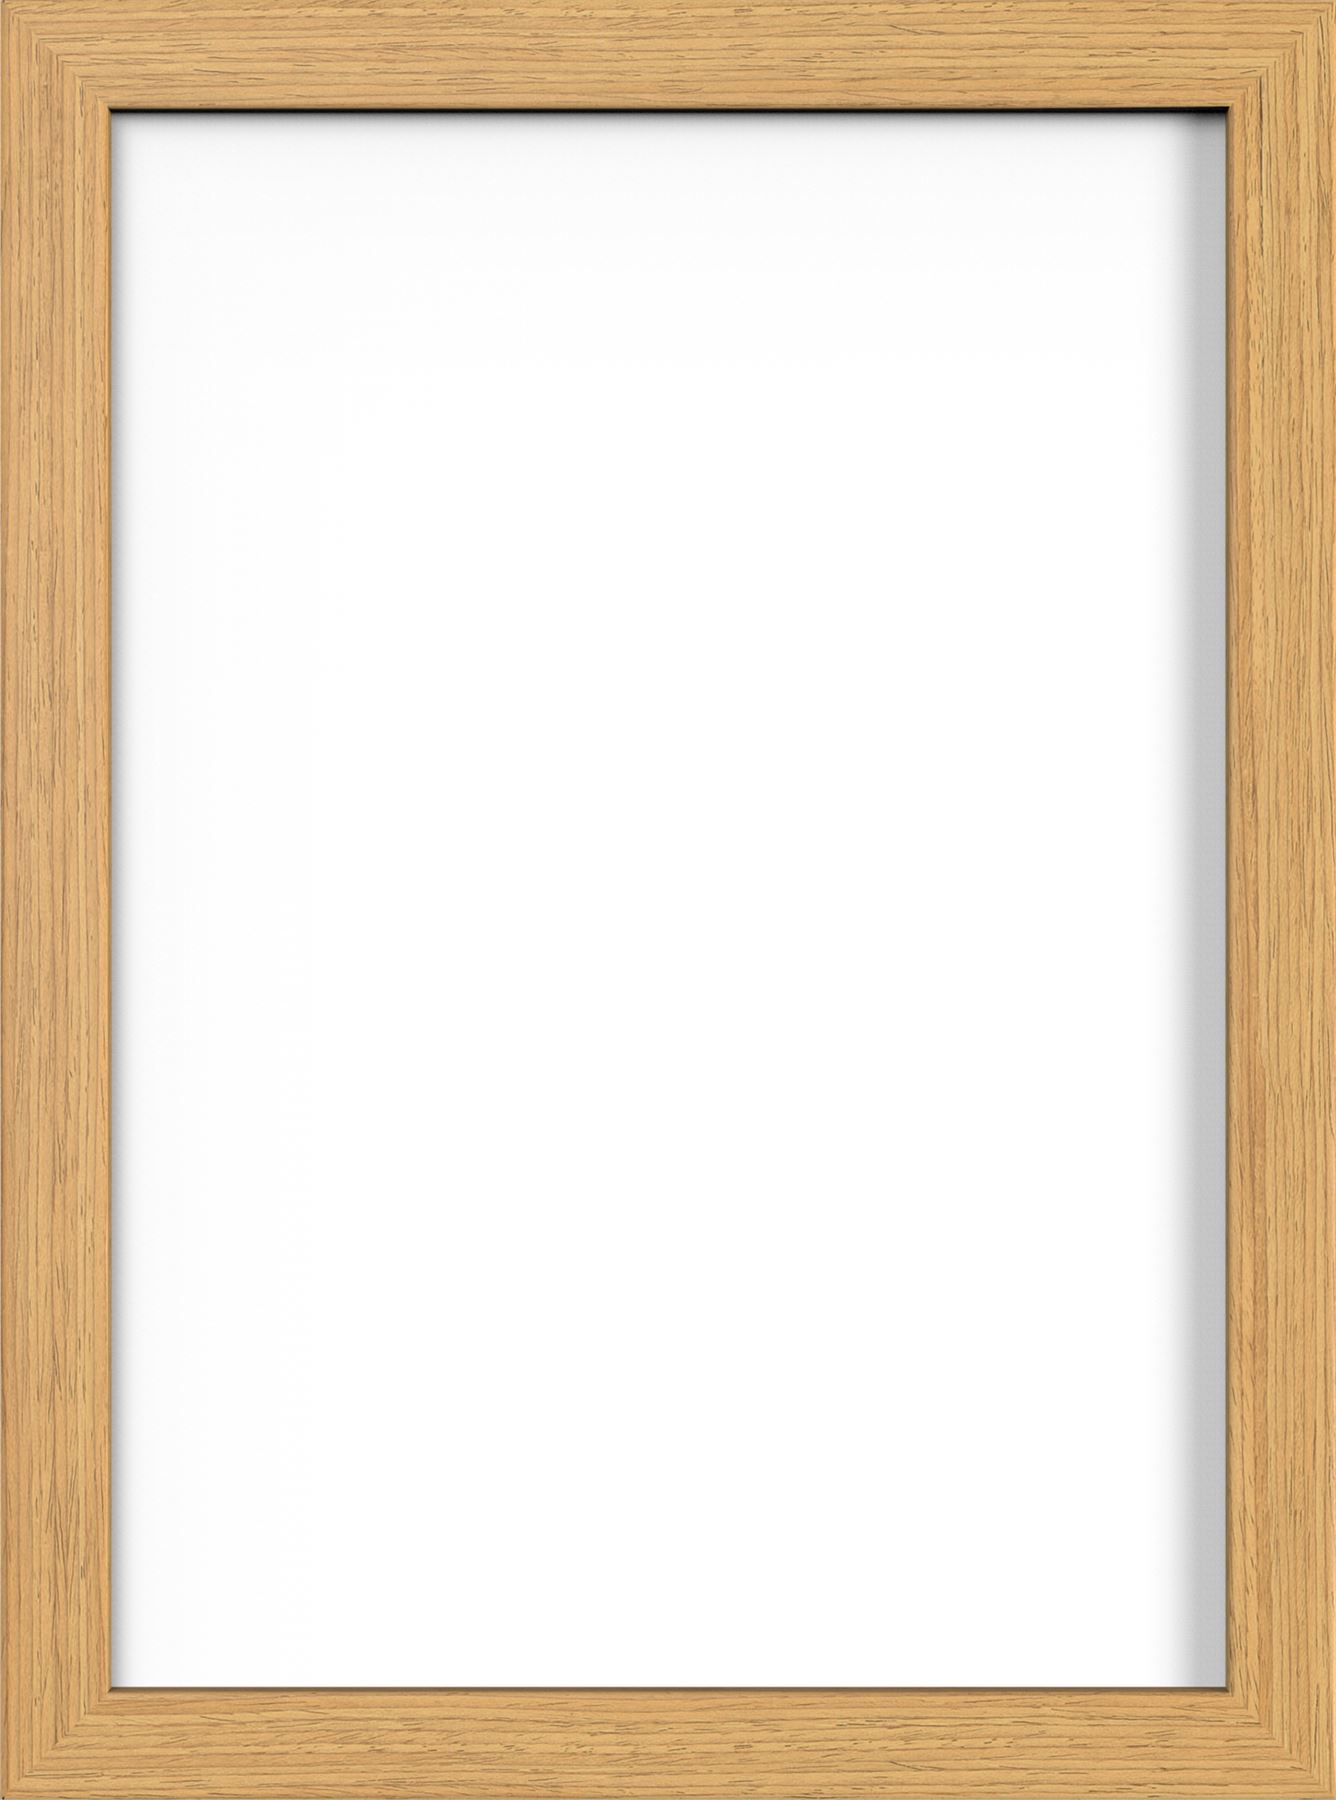 A2 White Frame Details About A1 A2 A3 A4 A5 Picture Photo Frame Maxi Poster Frame Wood Finish Black Oak White